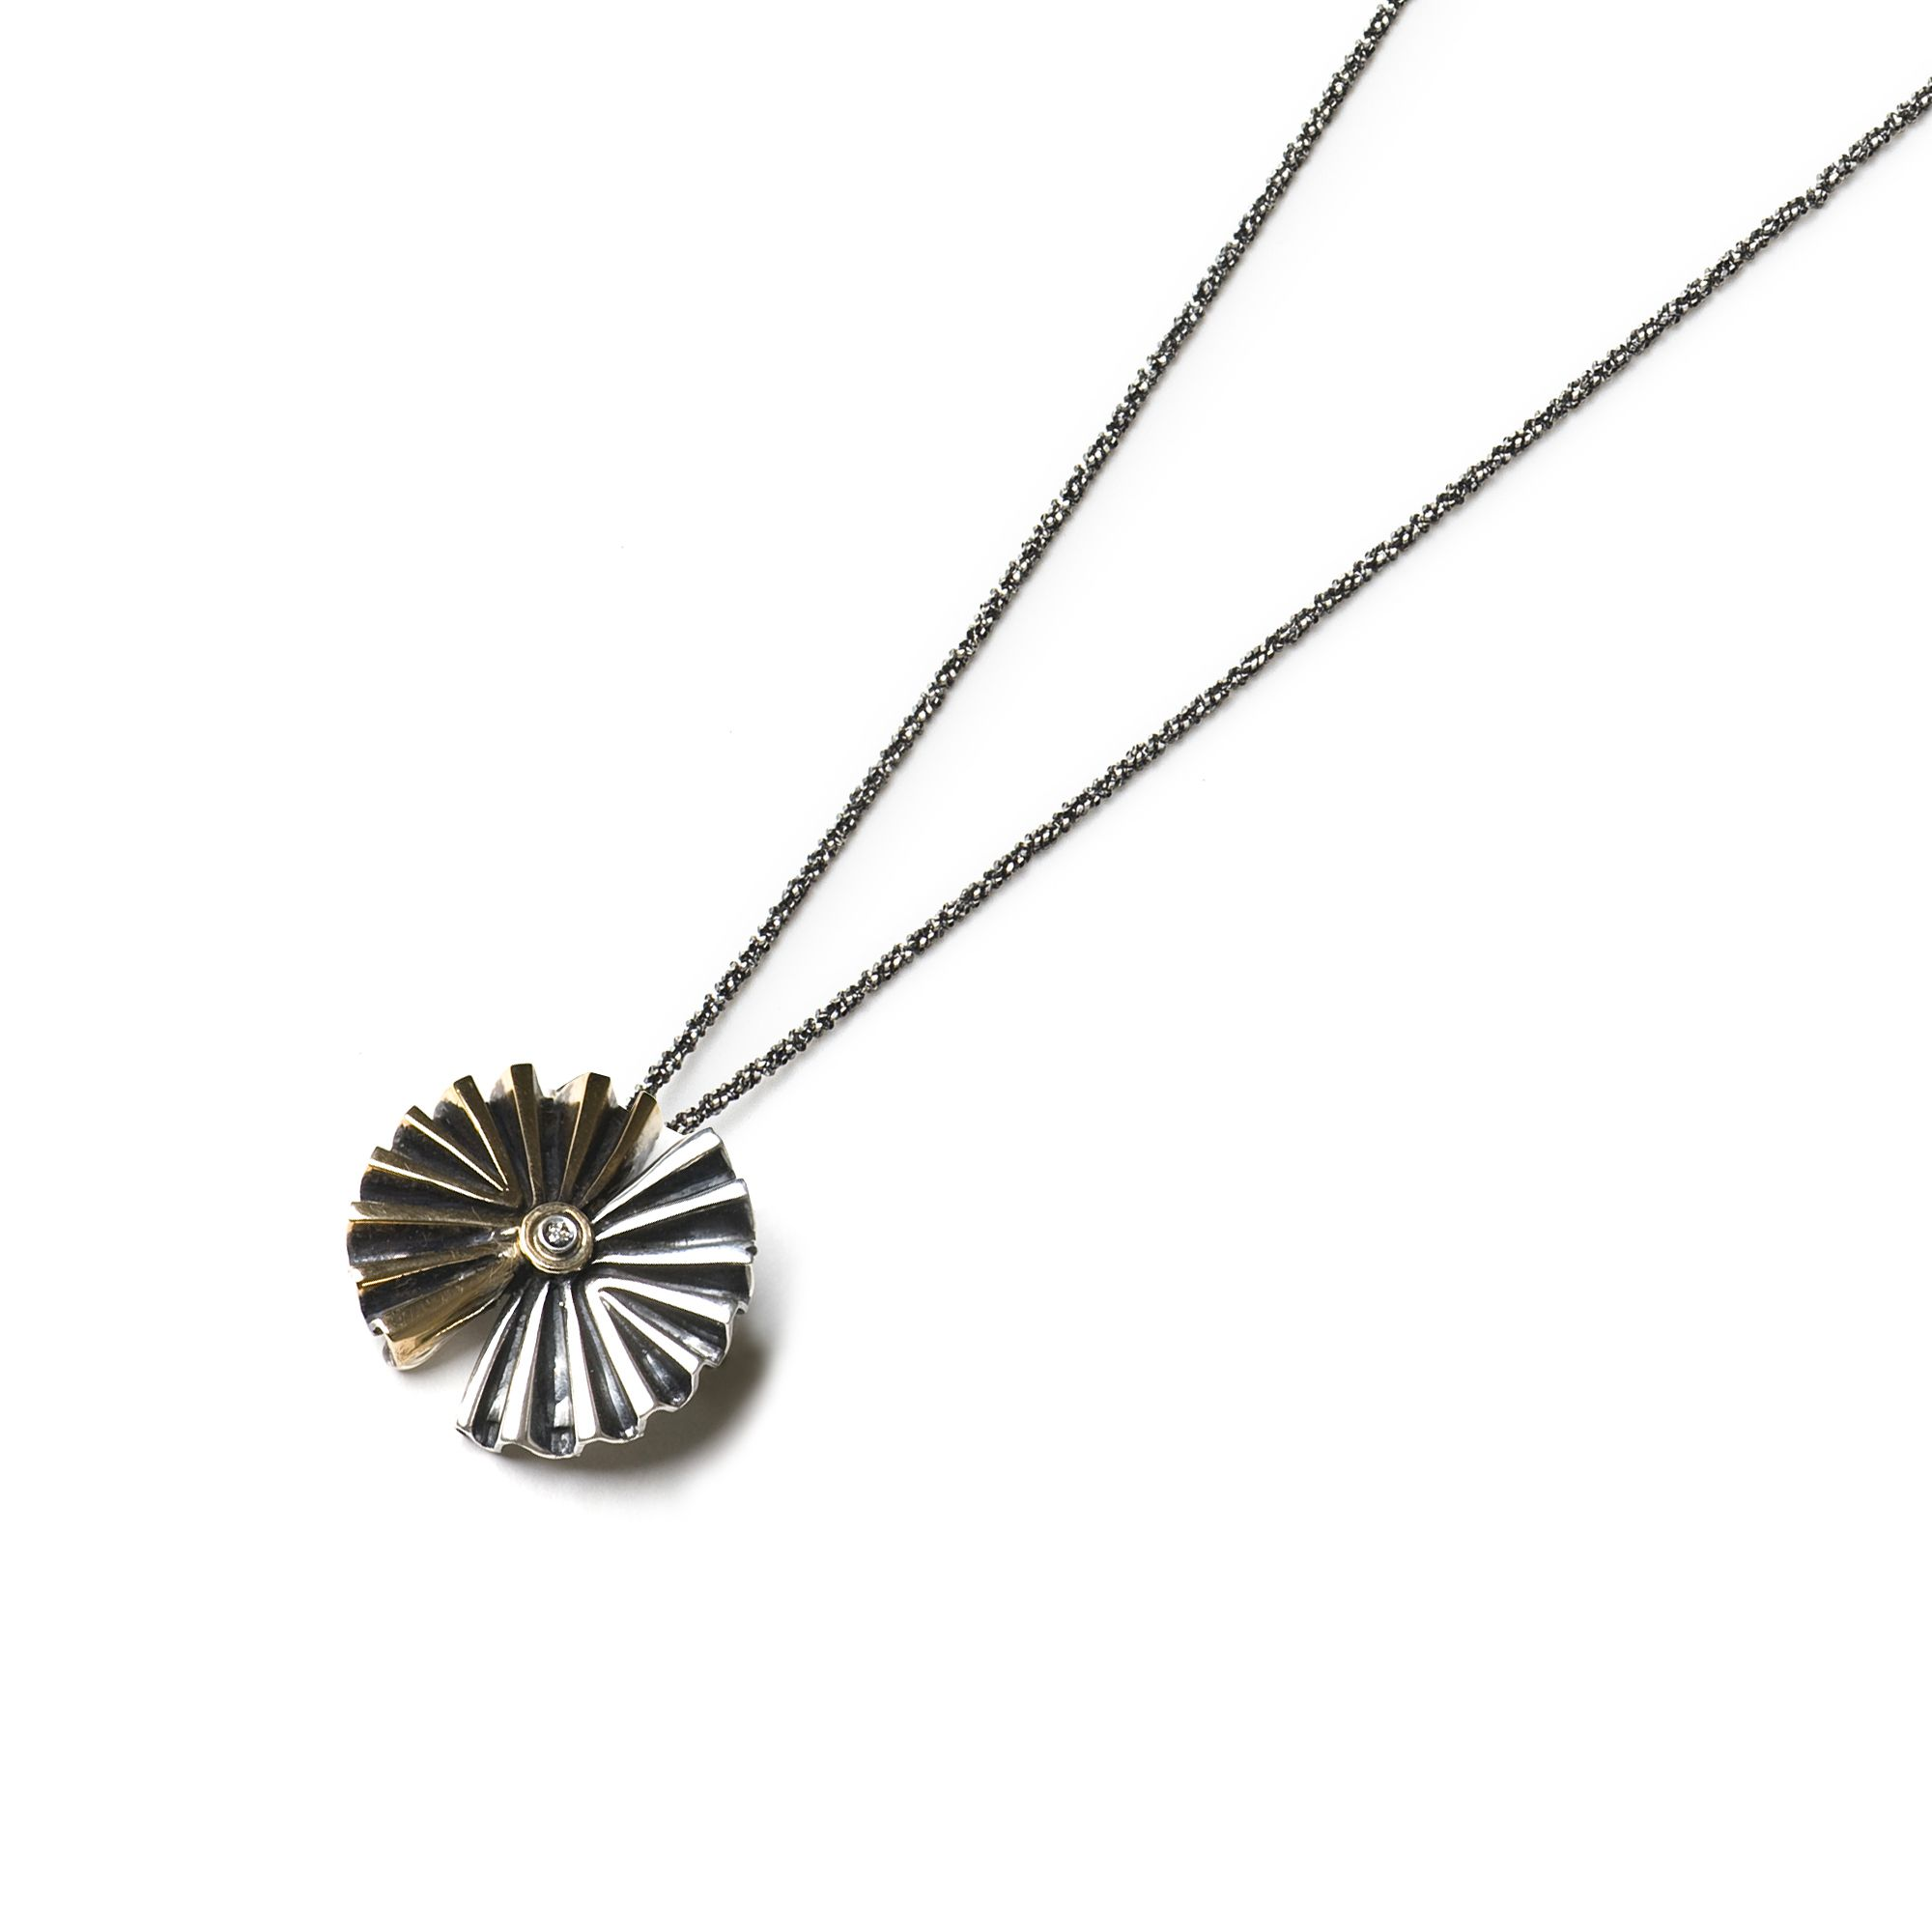 Double Fan pendant Silver and bronze pendant with chain